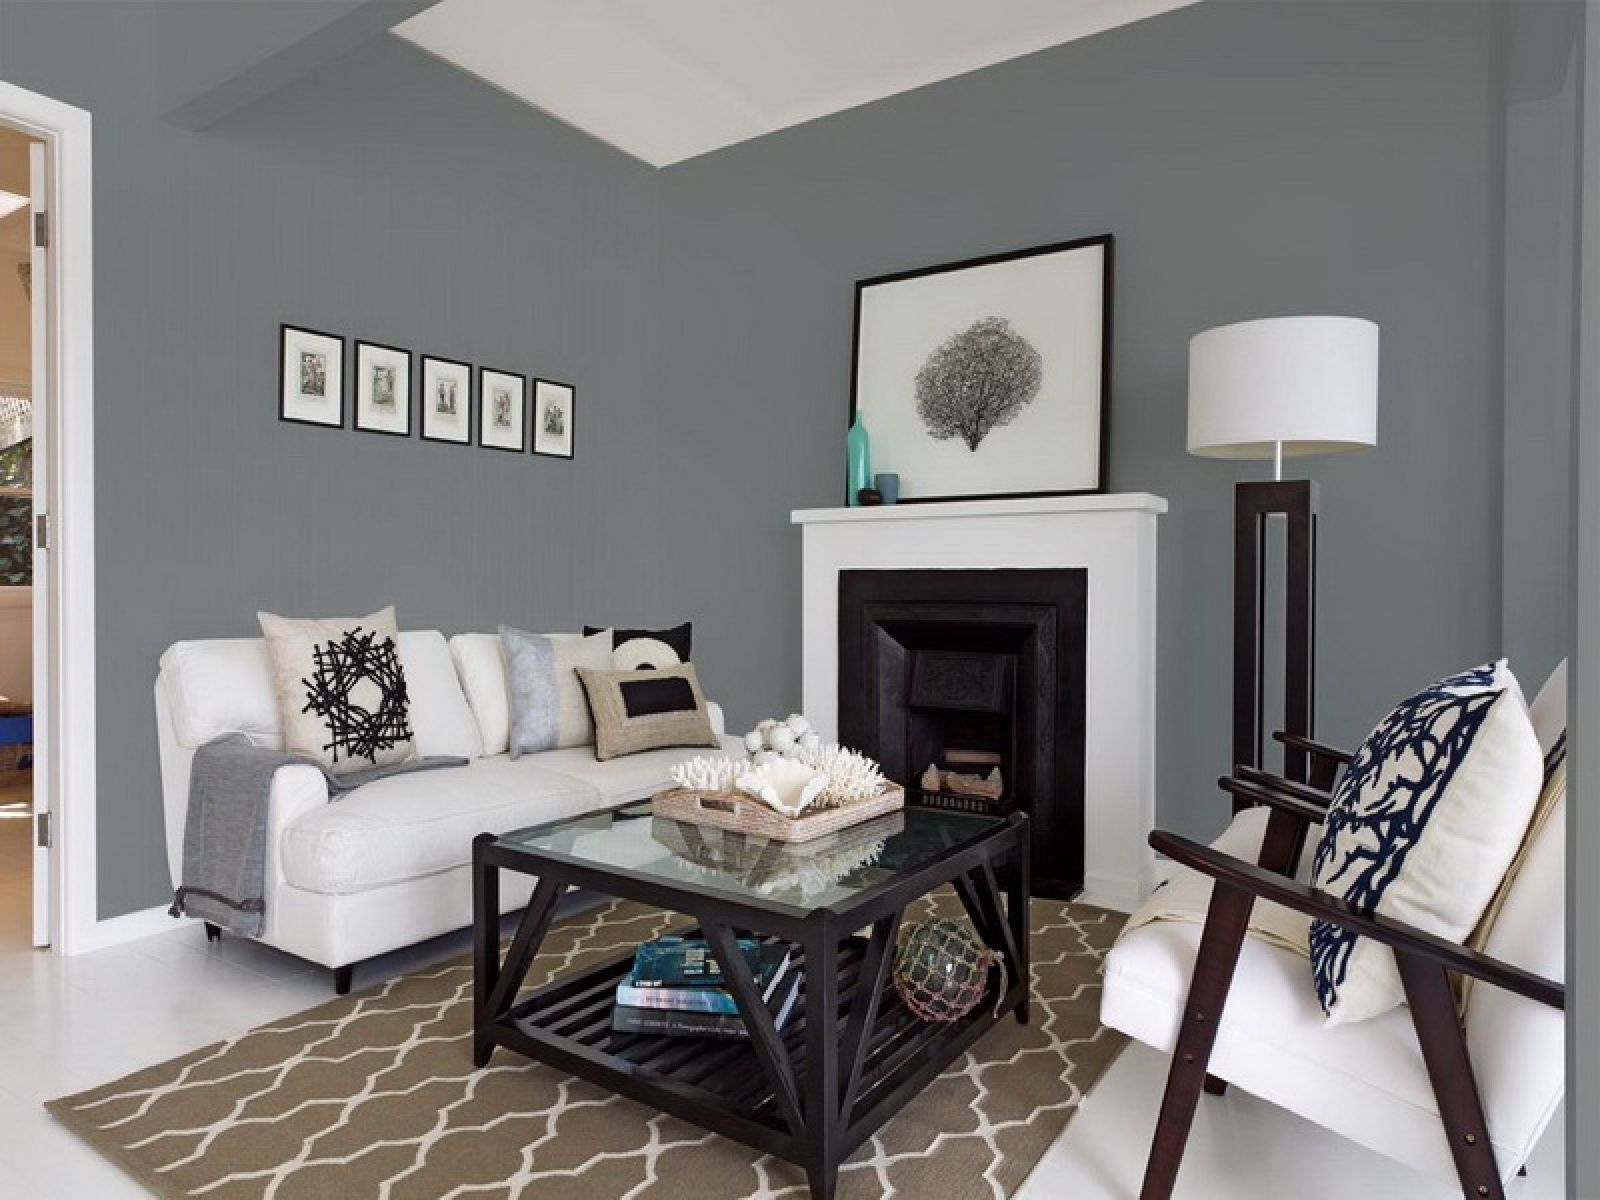 Pin Dark Grey Wall Color Scheme And Blue Bedding Sets In Small Living Room